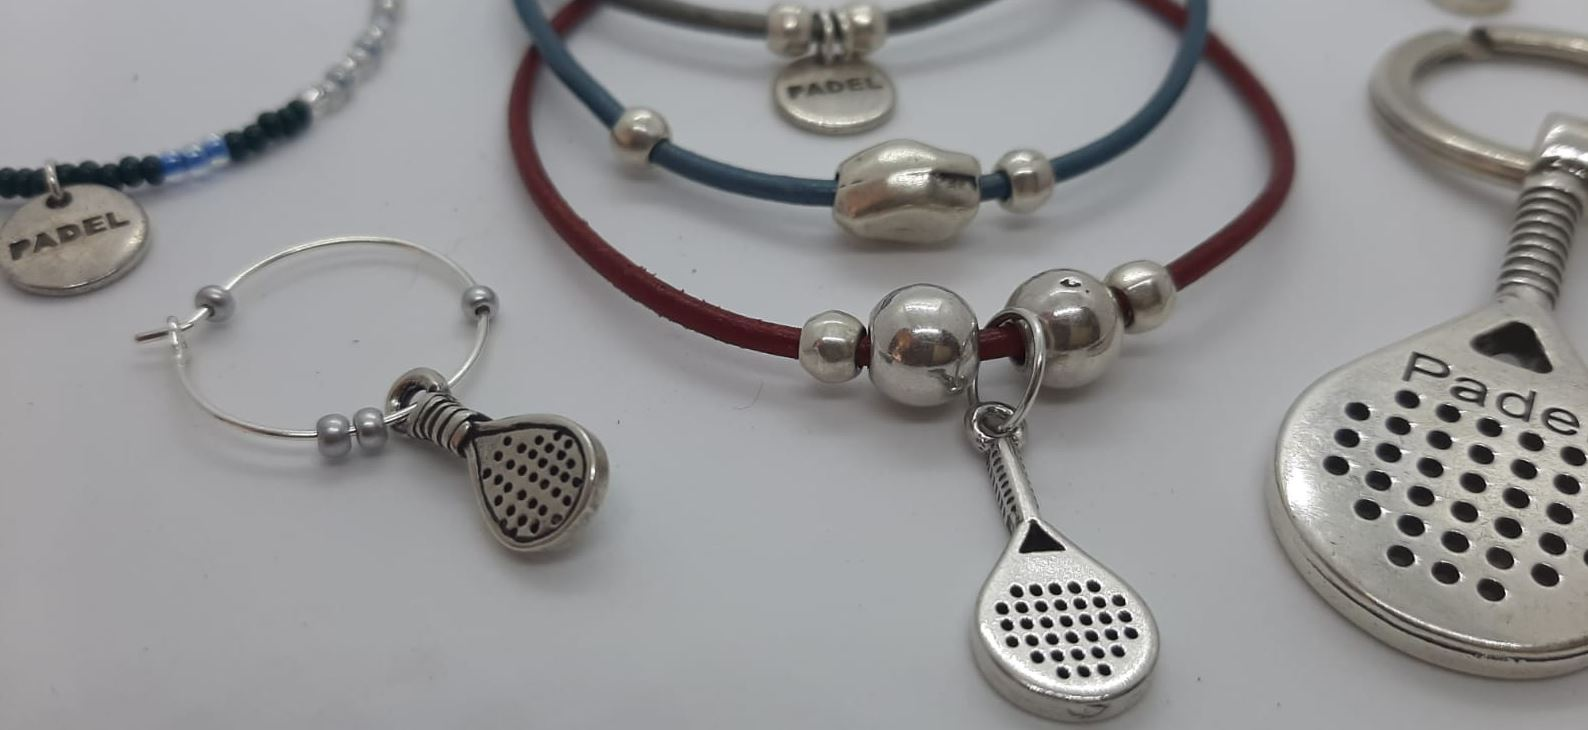 Padel Gadgets and other jewellery